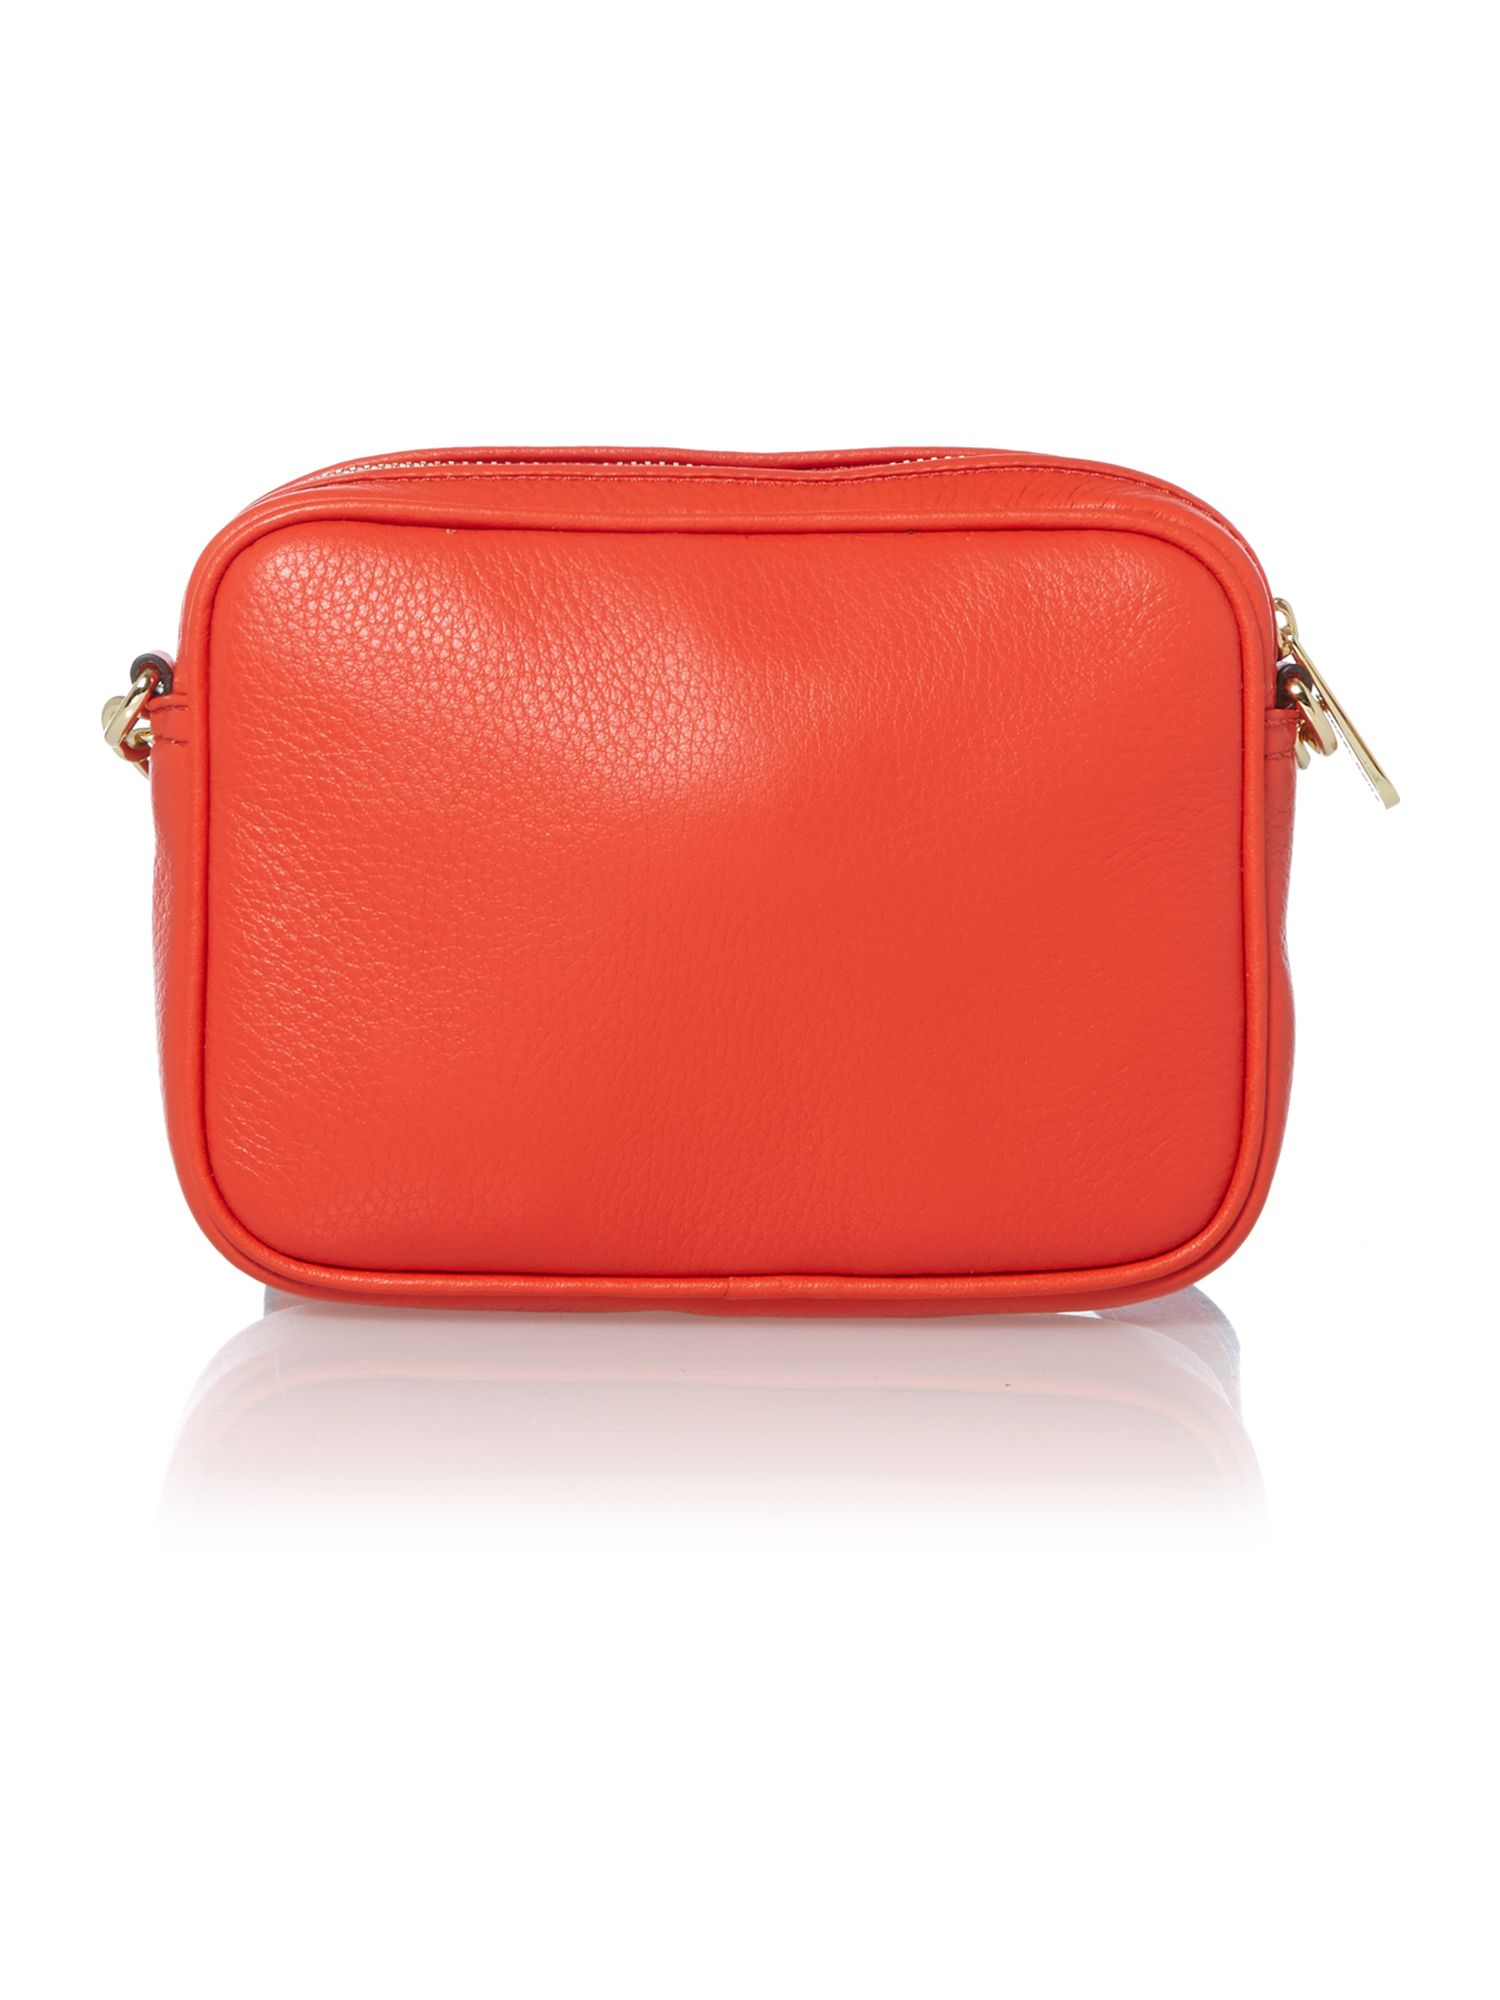 Jet Set Item orange cross body bag